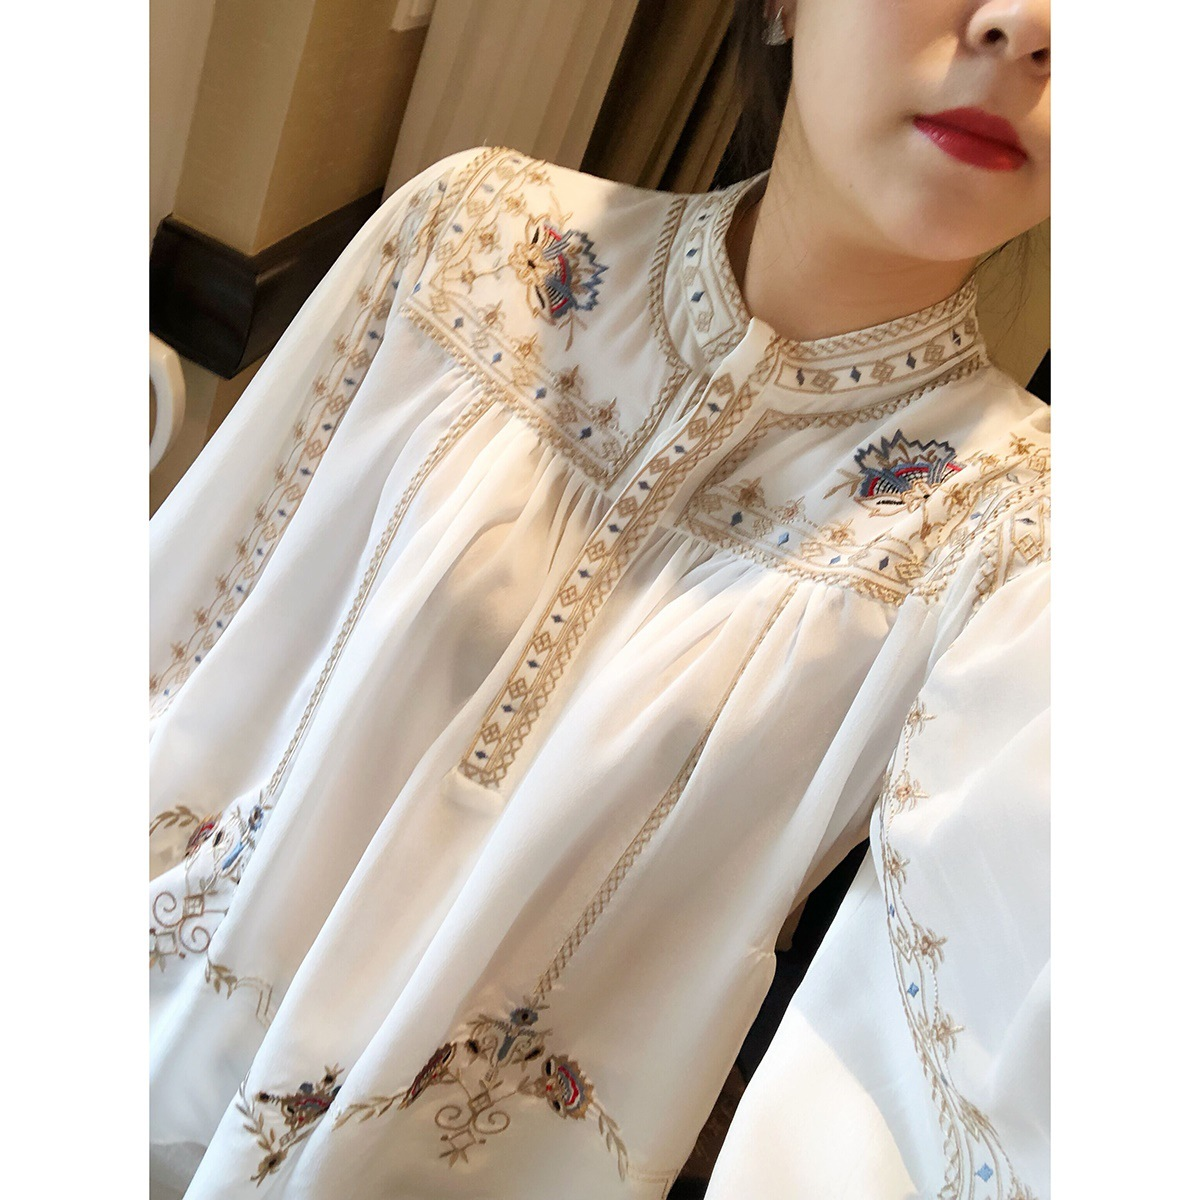 Large fashion printed shirt for womens 2021 spring and summer new retro Bohemian Style Lantern Sleeve Blouse batch in stock